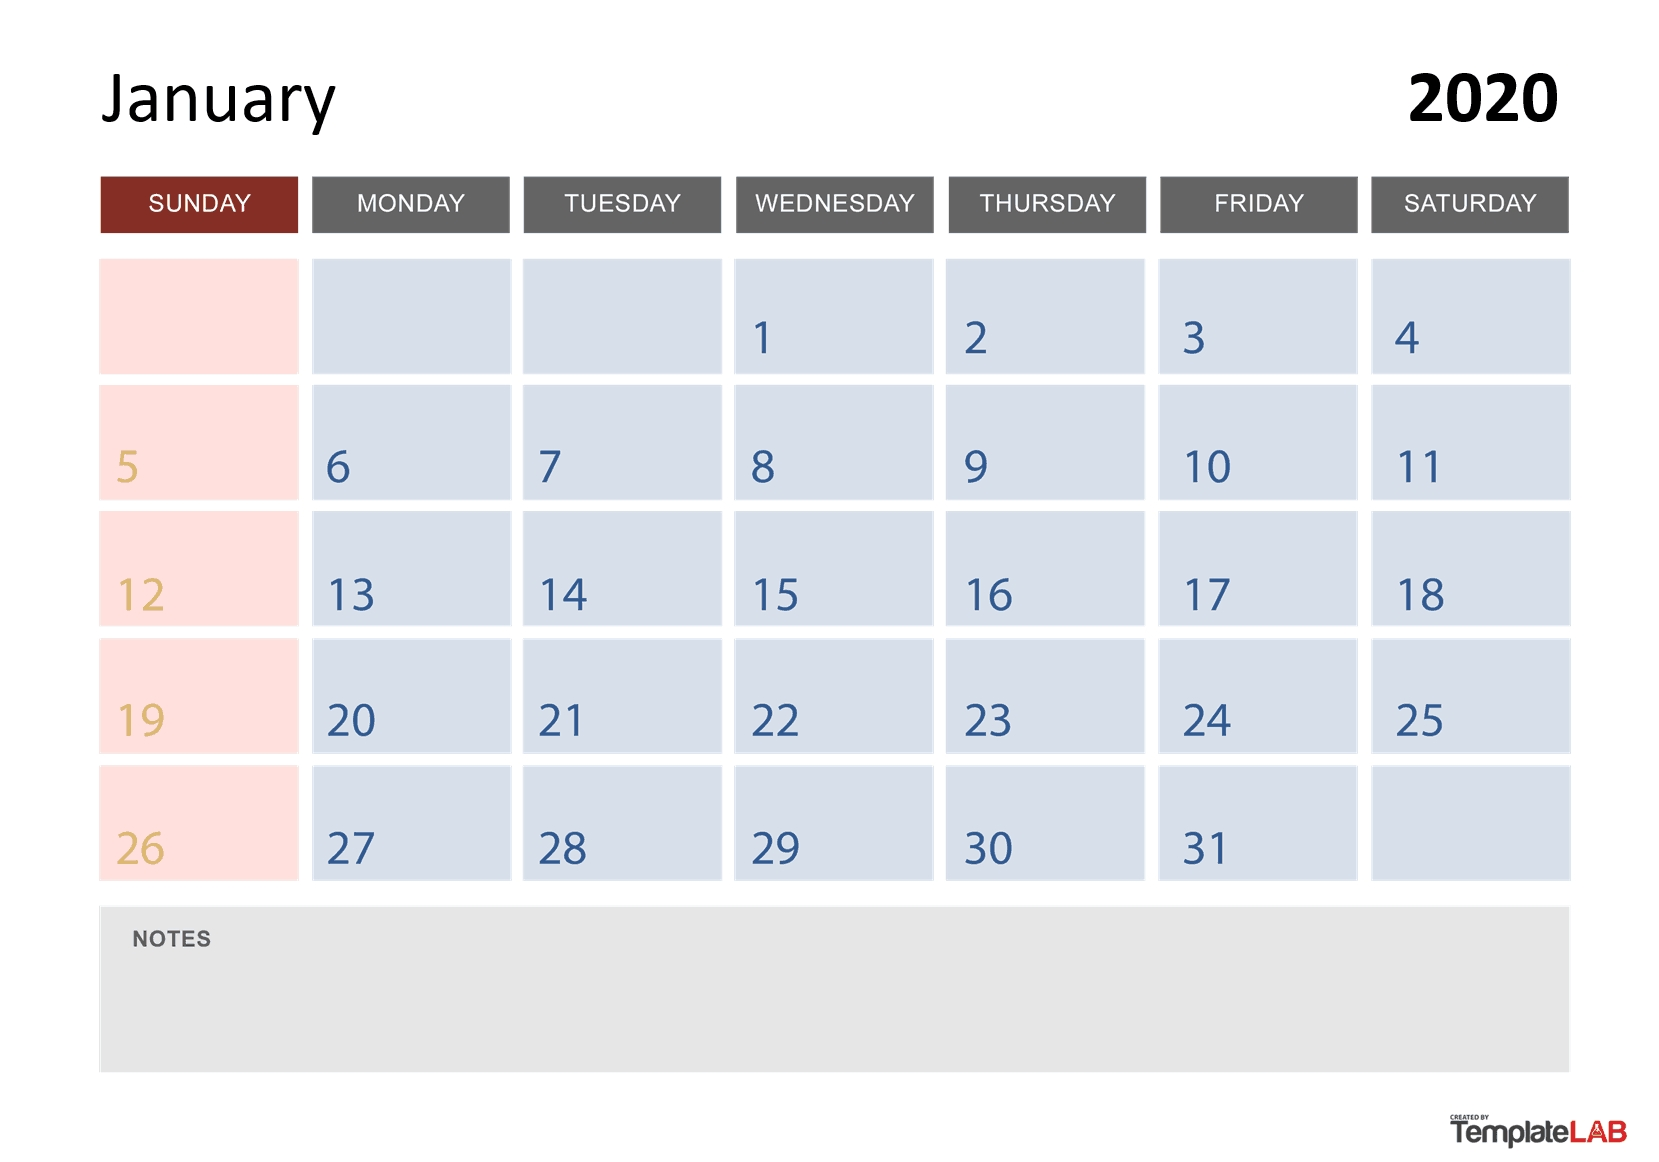 2020 Printable Calendars [Monthly, With Holidays, Yearly] ᐅ in 2020 Printable Calendar Templates Quarterly